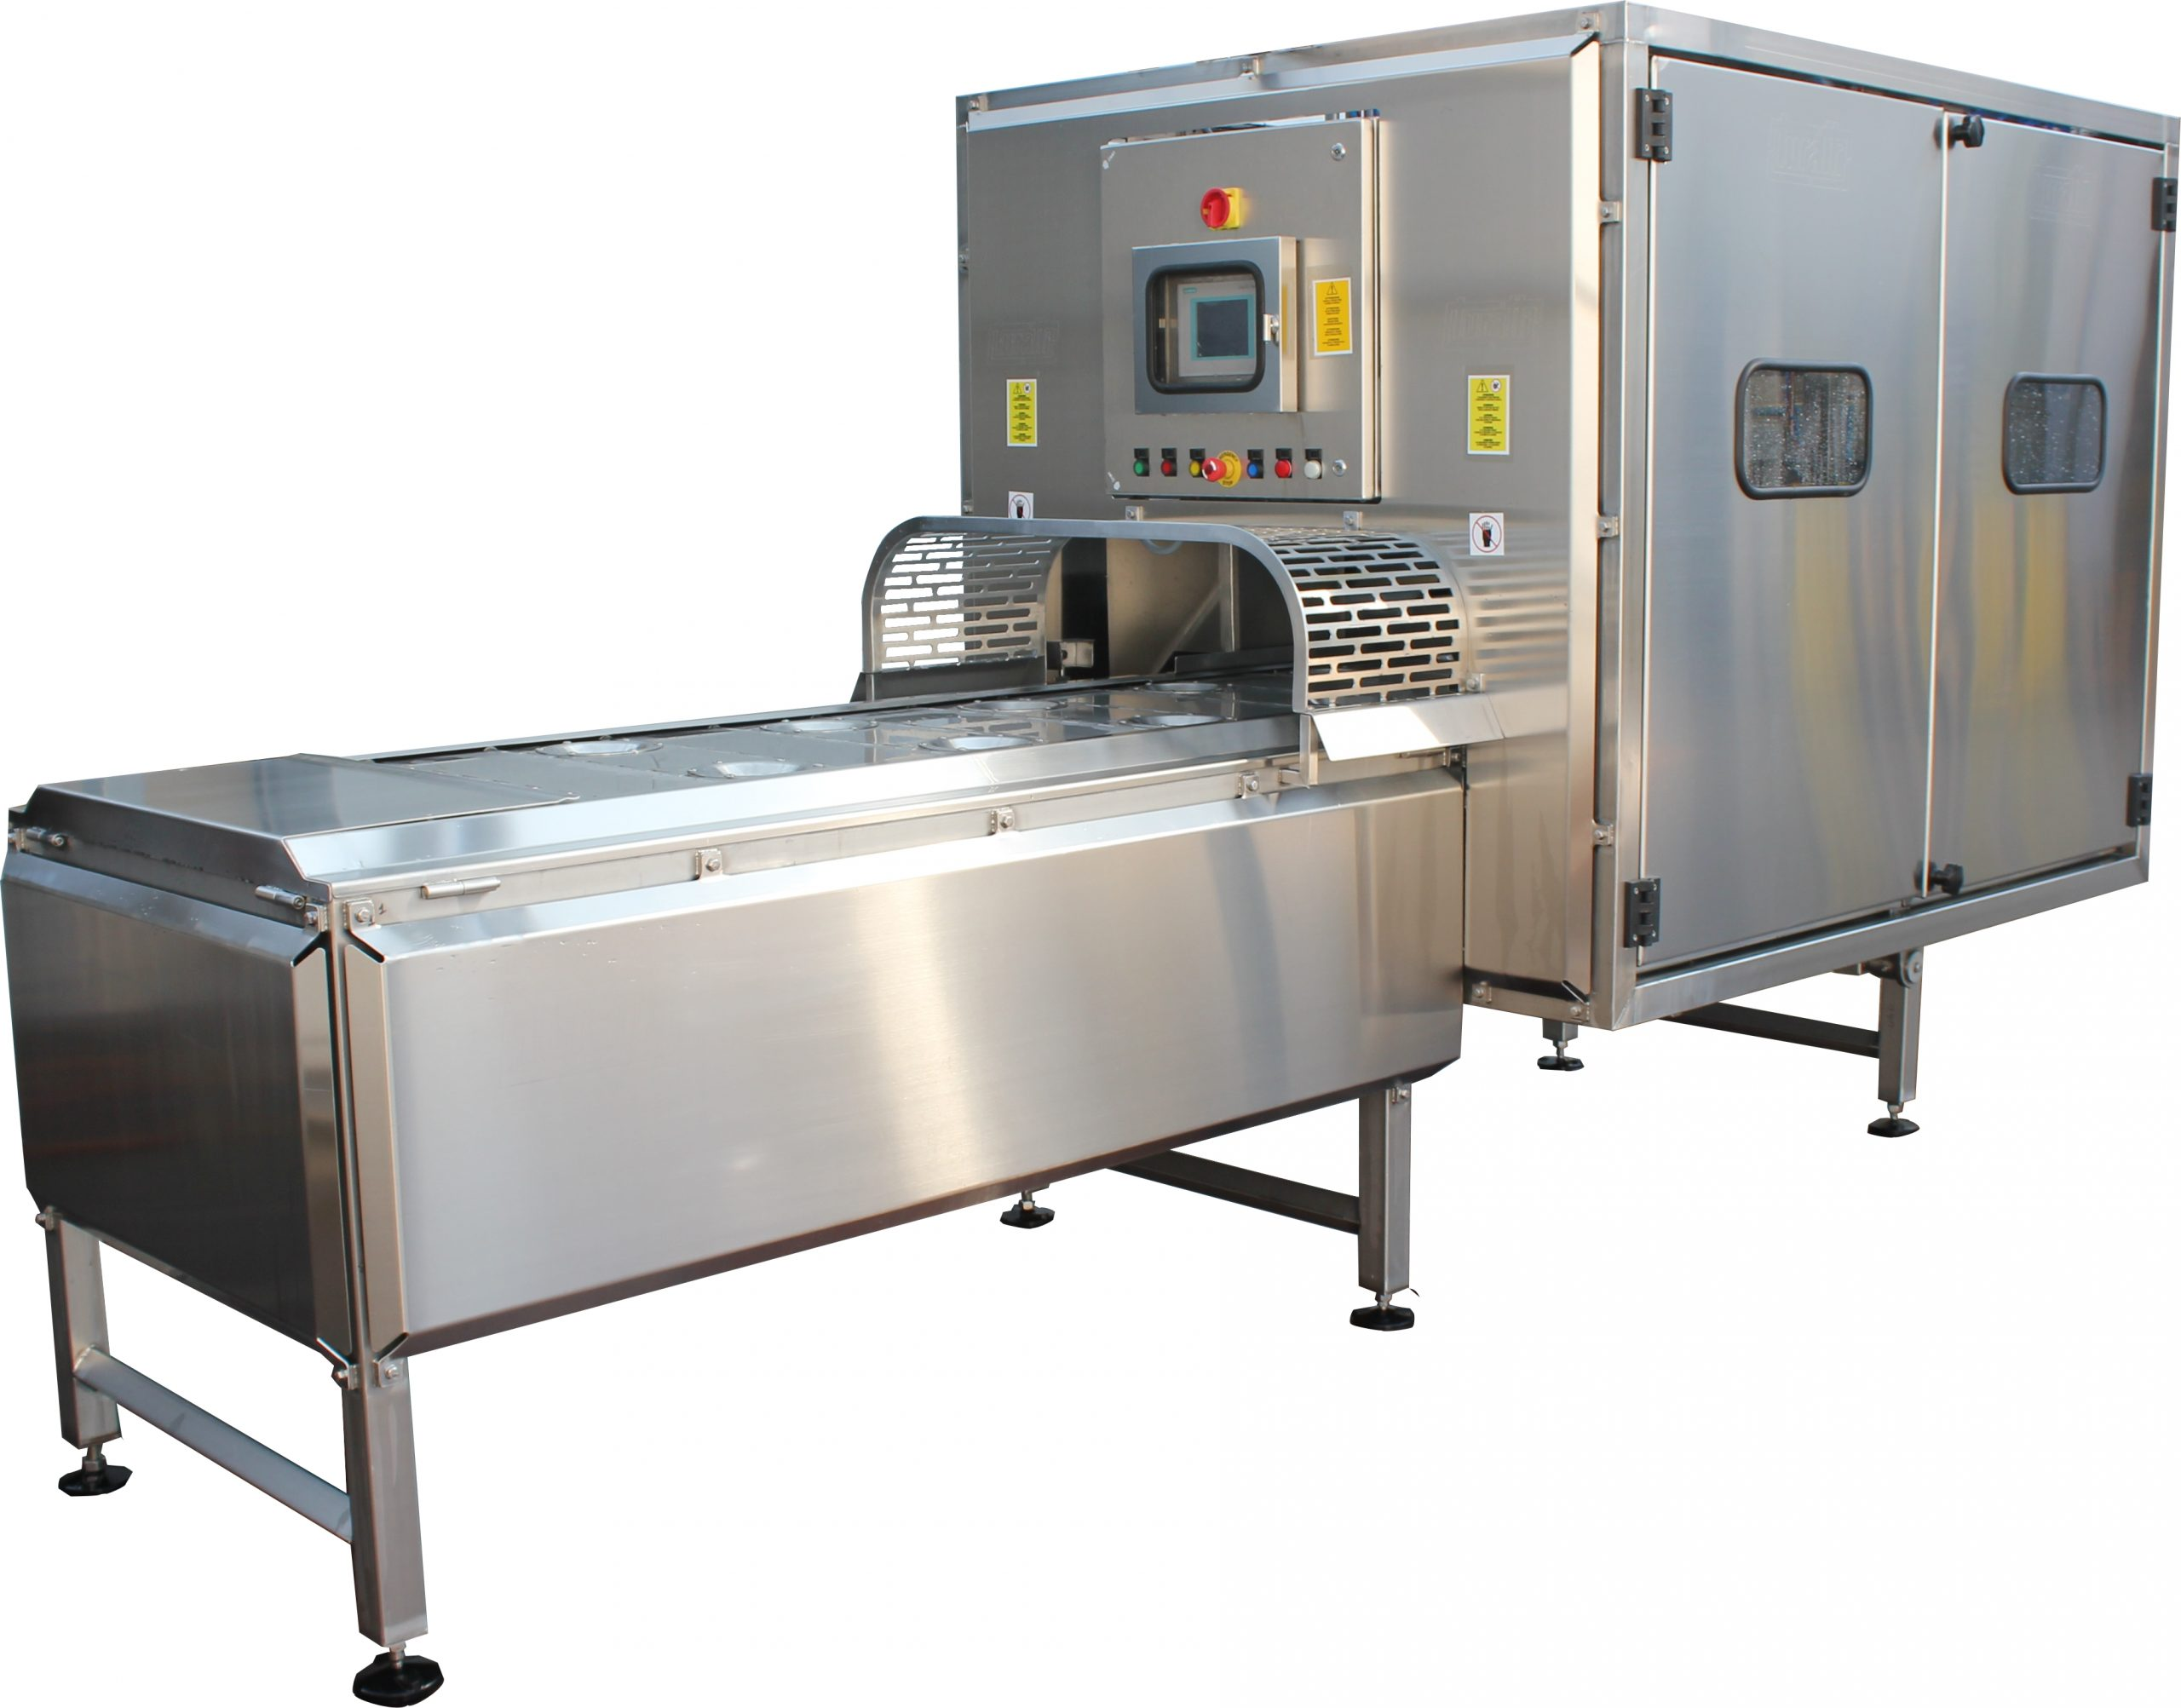 Turatti has always been a group that looks to innovation, based on constant synergies between the four divisions: Food Processing, Food Service, Automation and Dionysus.